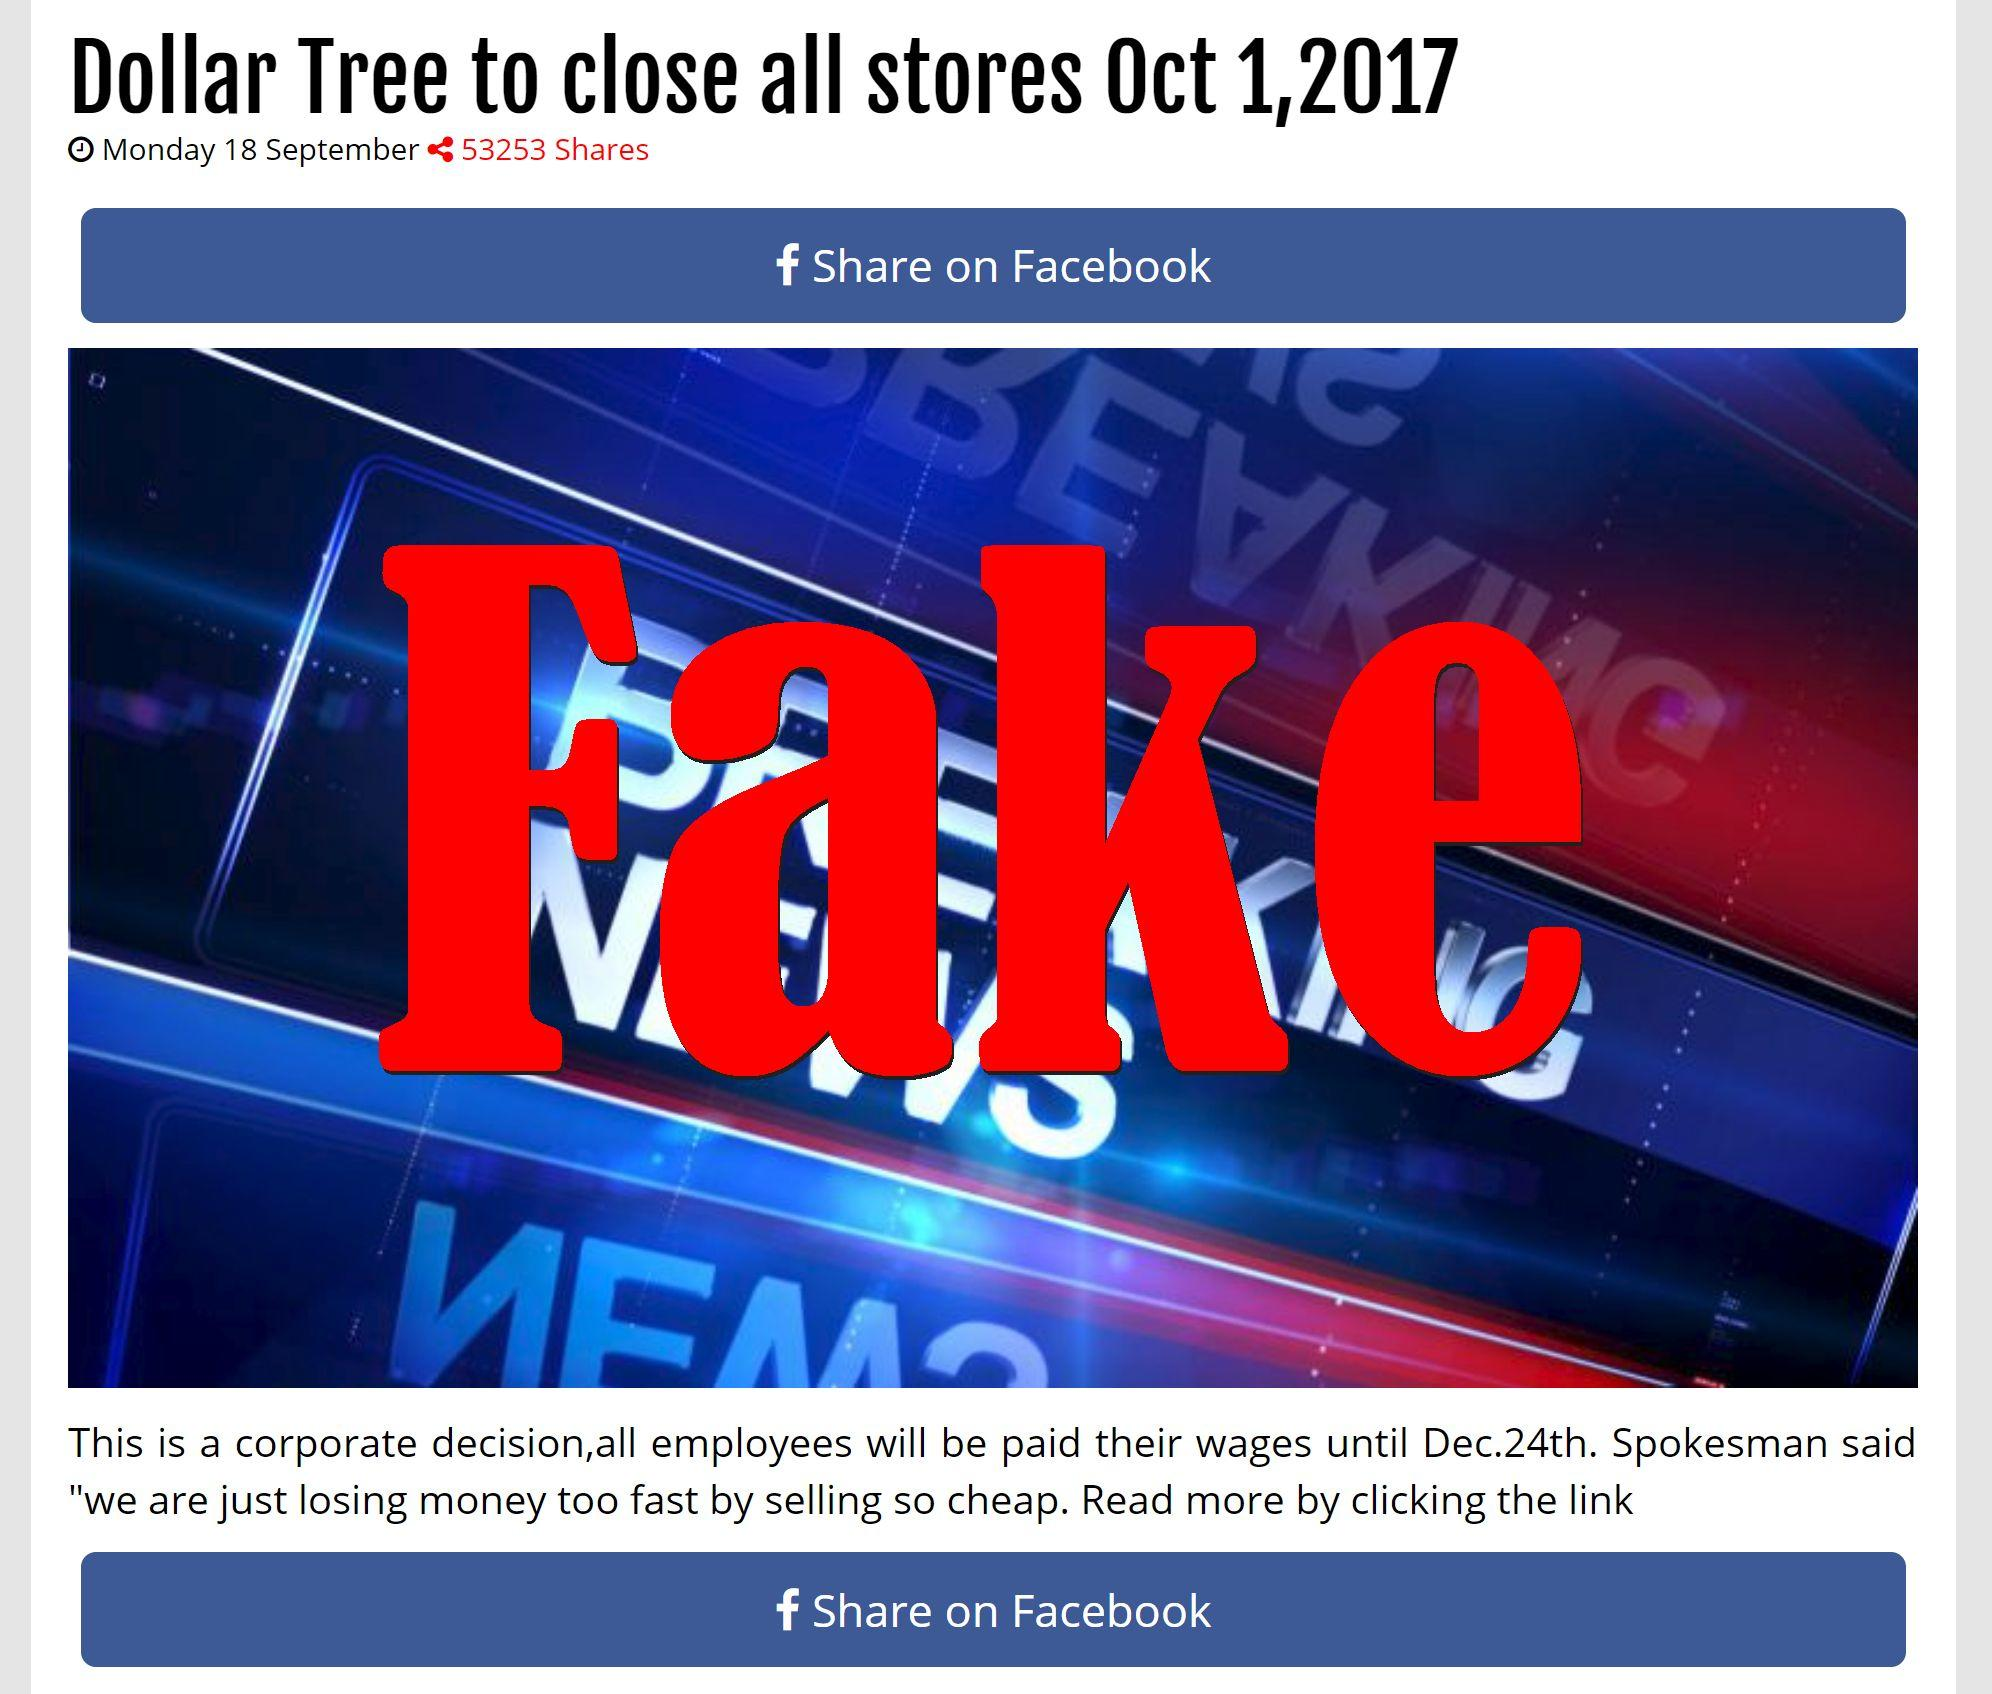 Fake News: Dollar Tree NOT To Close All Stores By October 1st 2017